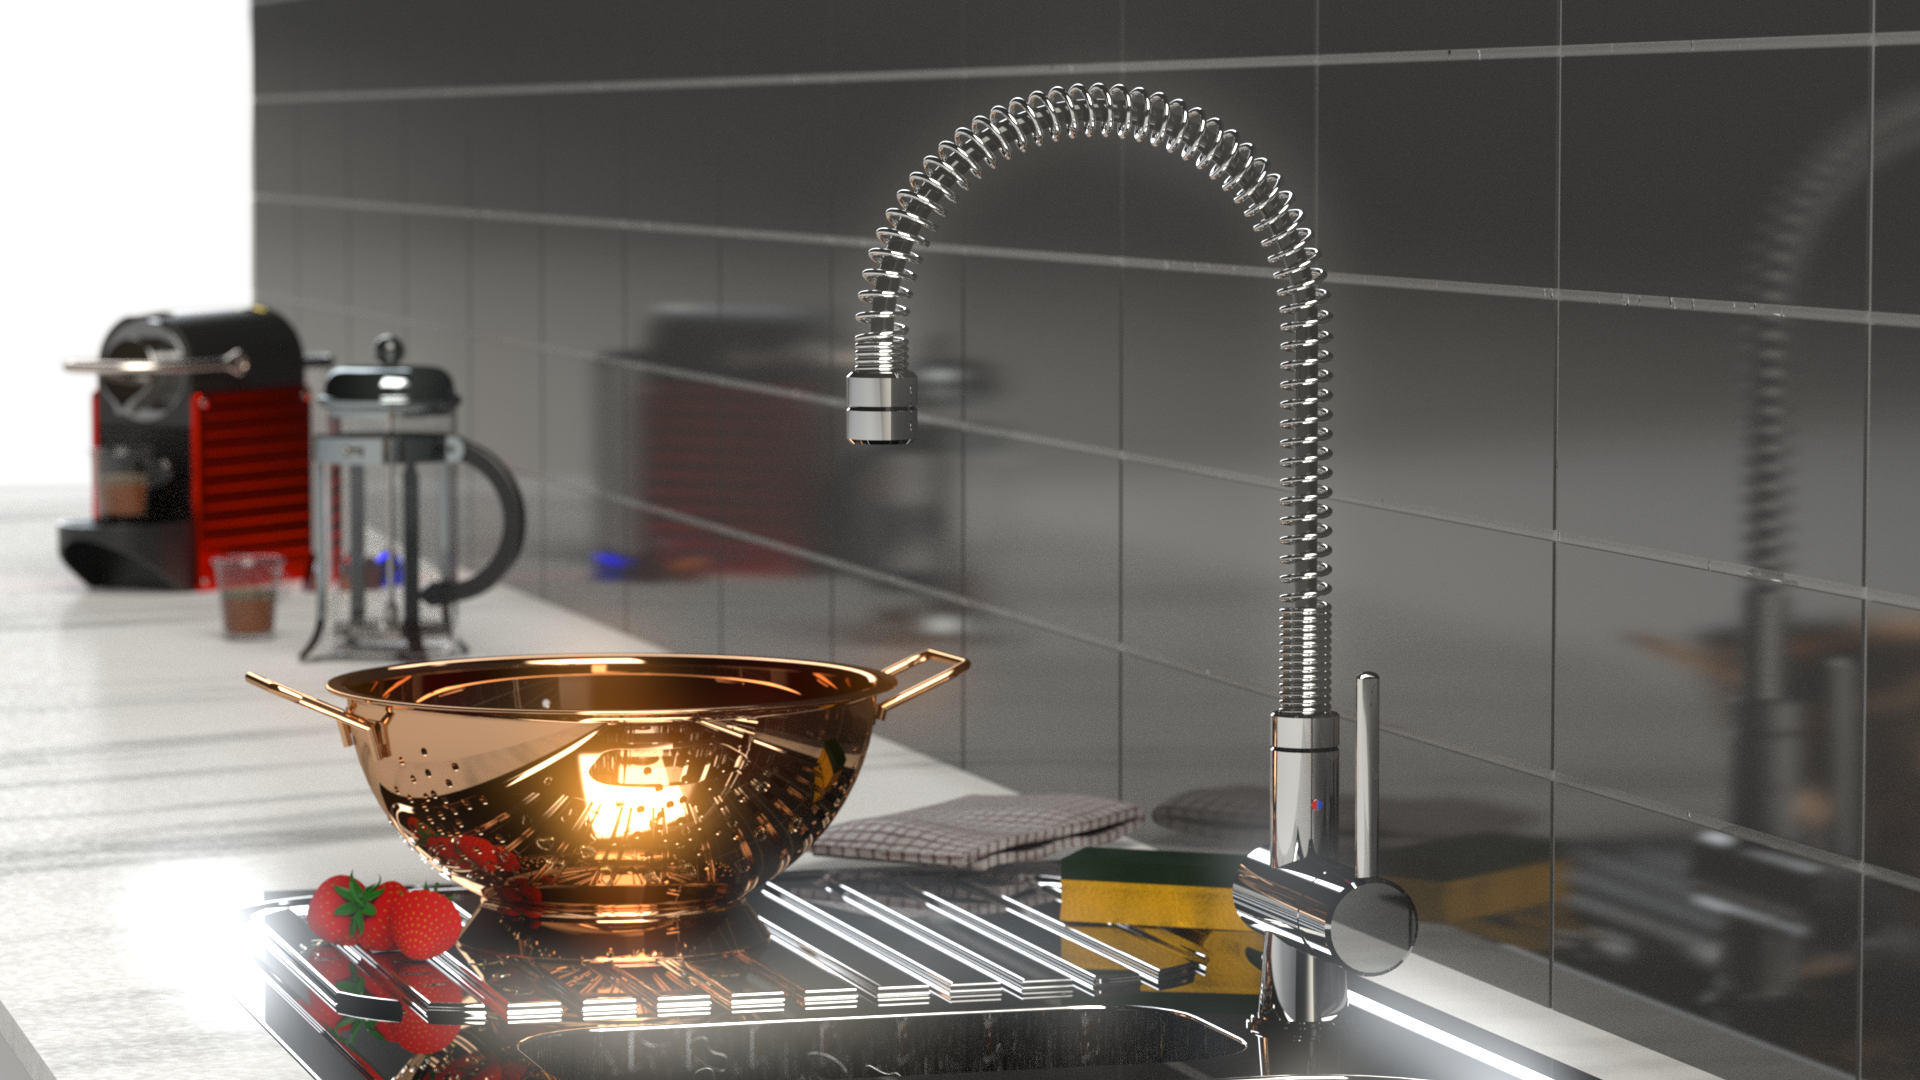 Render of kitchen tap